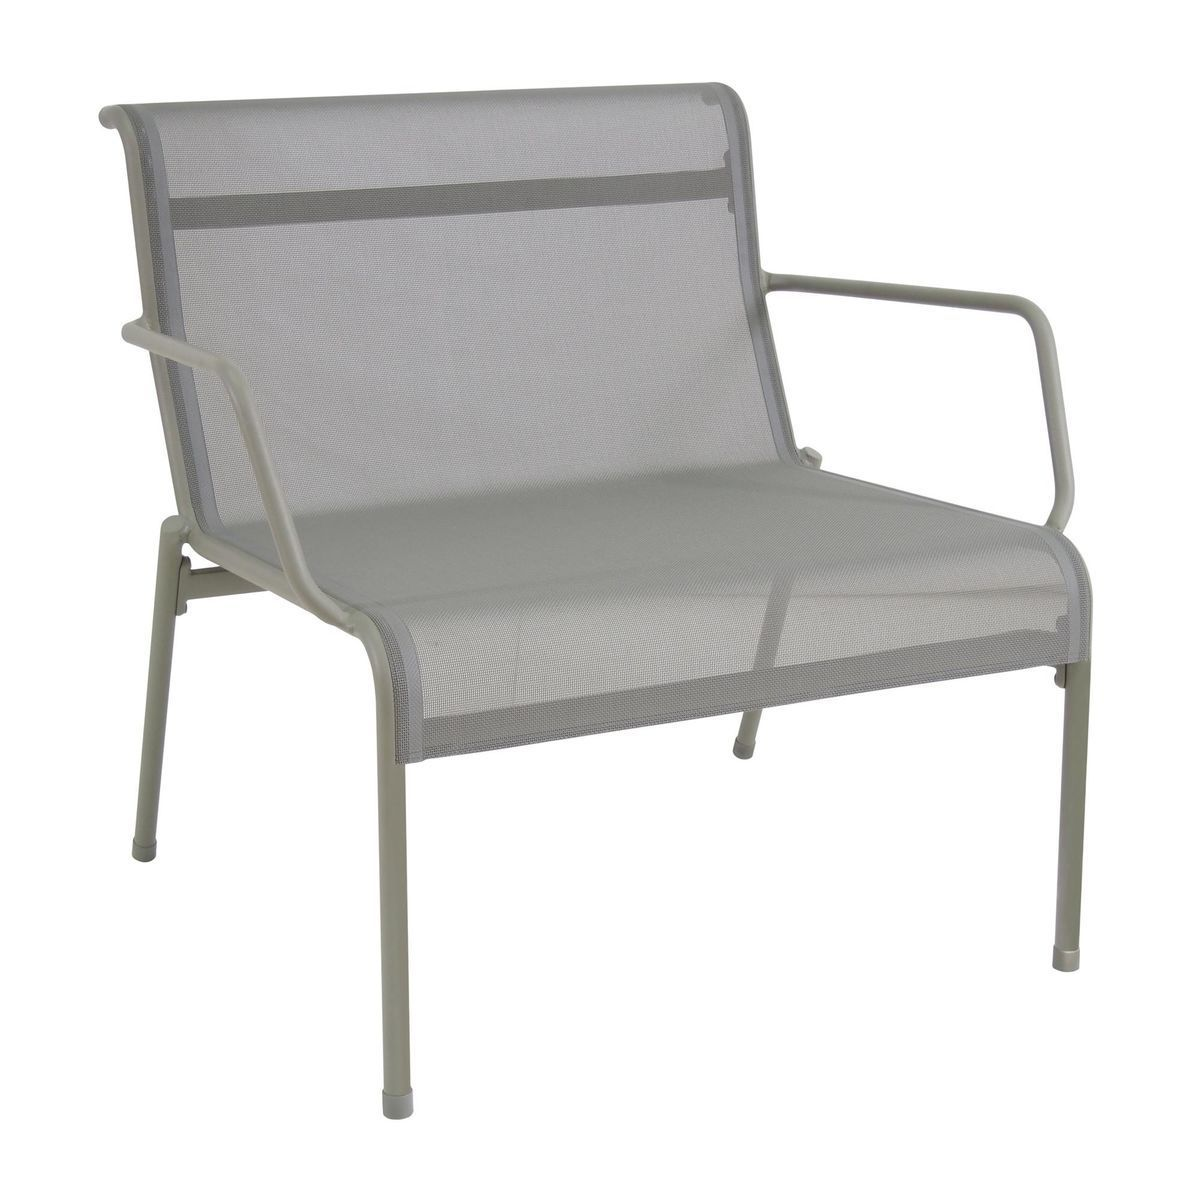 emu kira lounge chair outdoor greyemutex